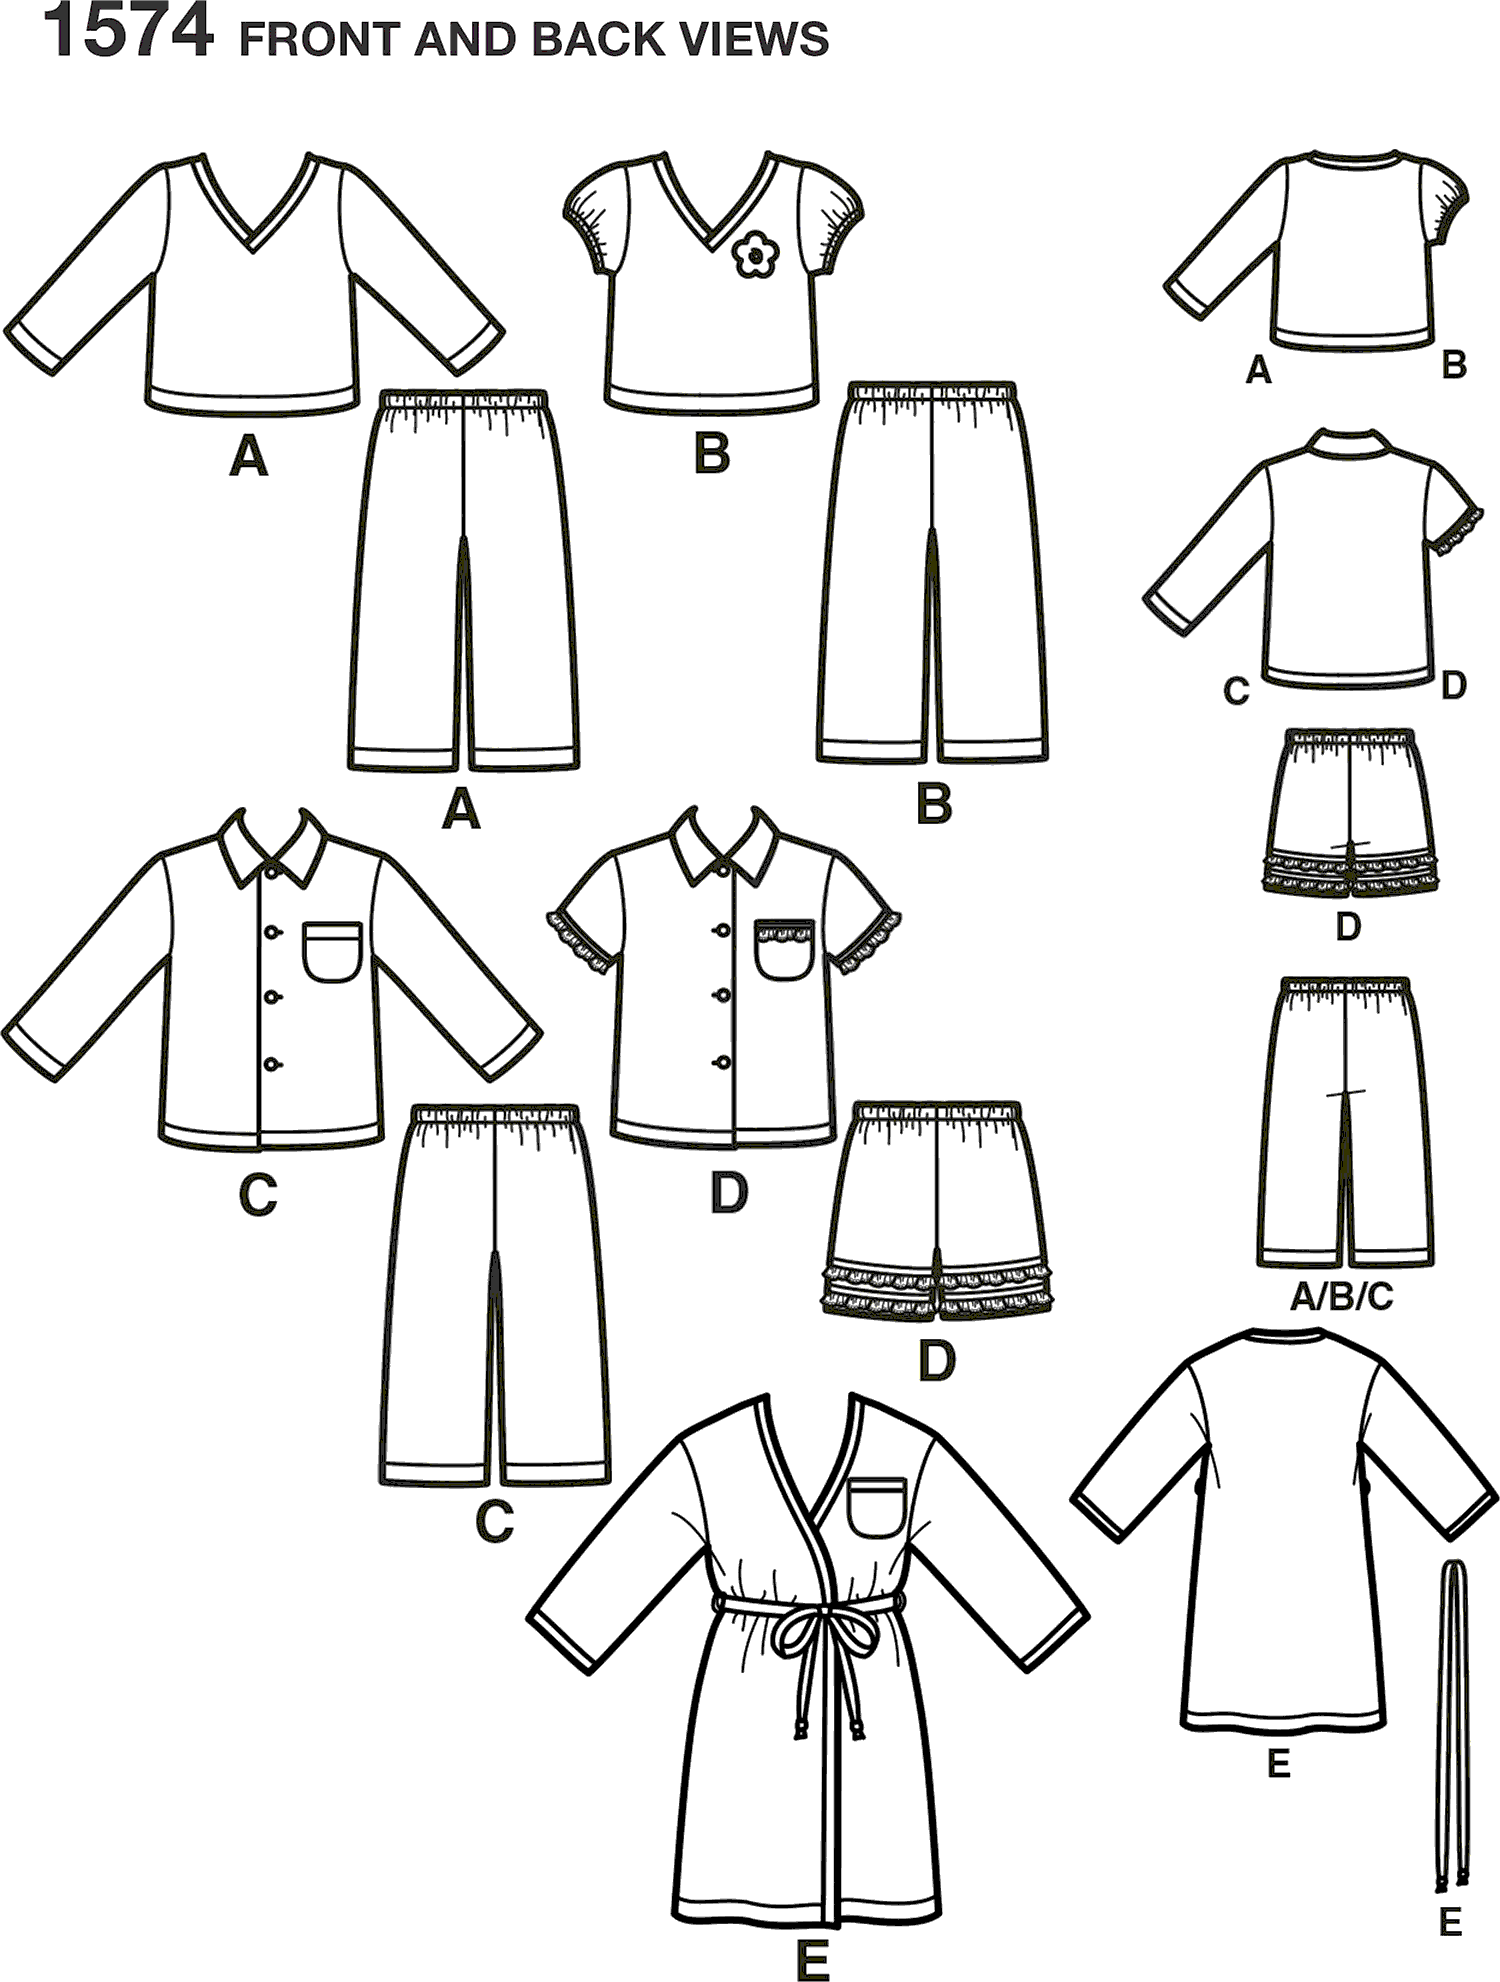 Simplicity Pattern 1574 Toddlers Loungewear Line Art From Patternsandplains.com